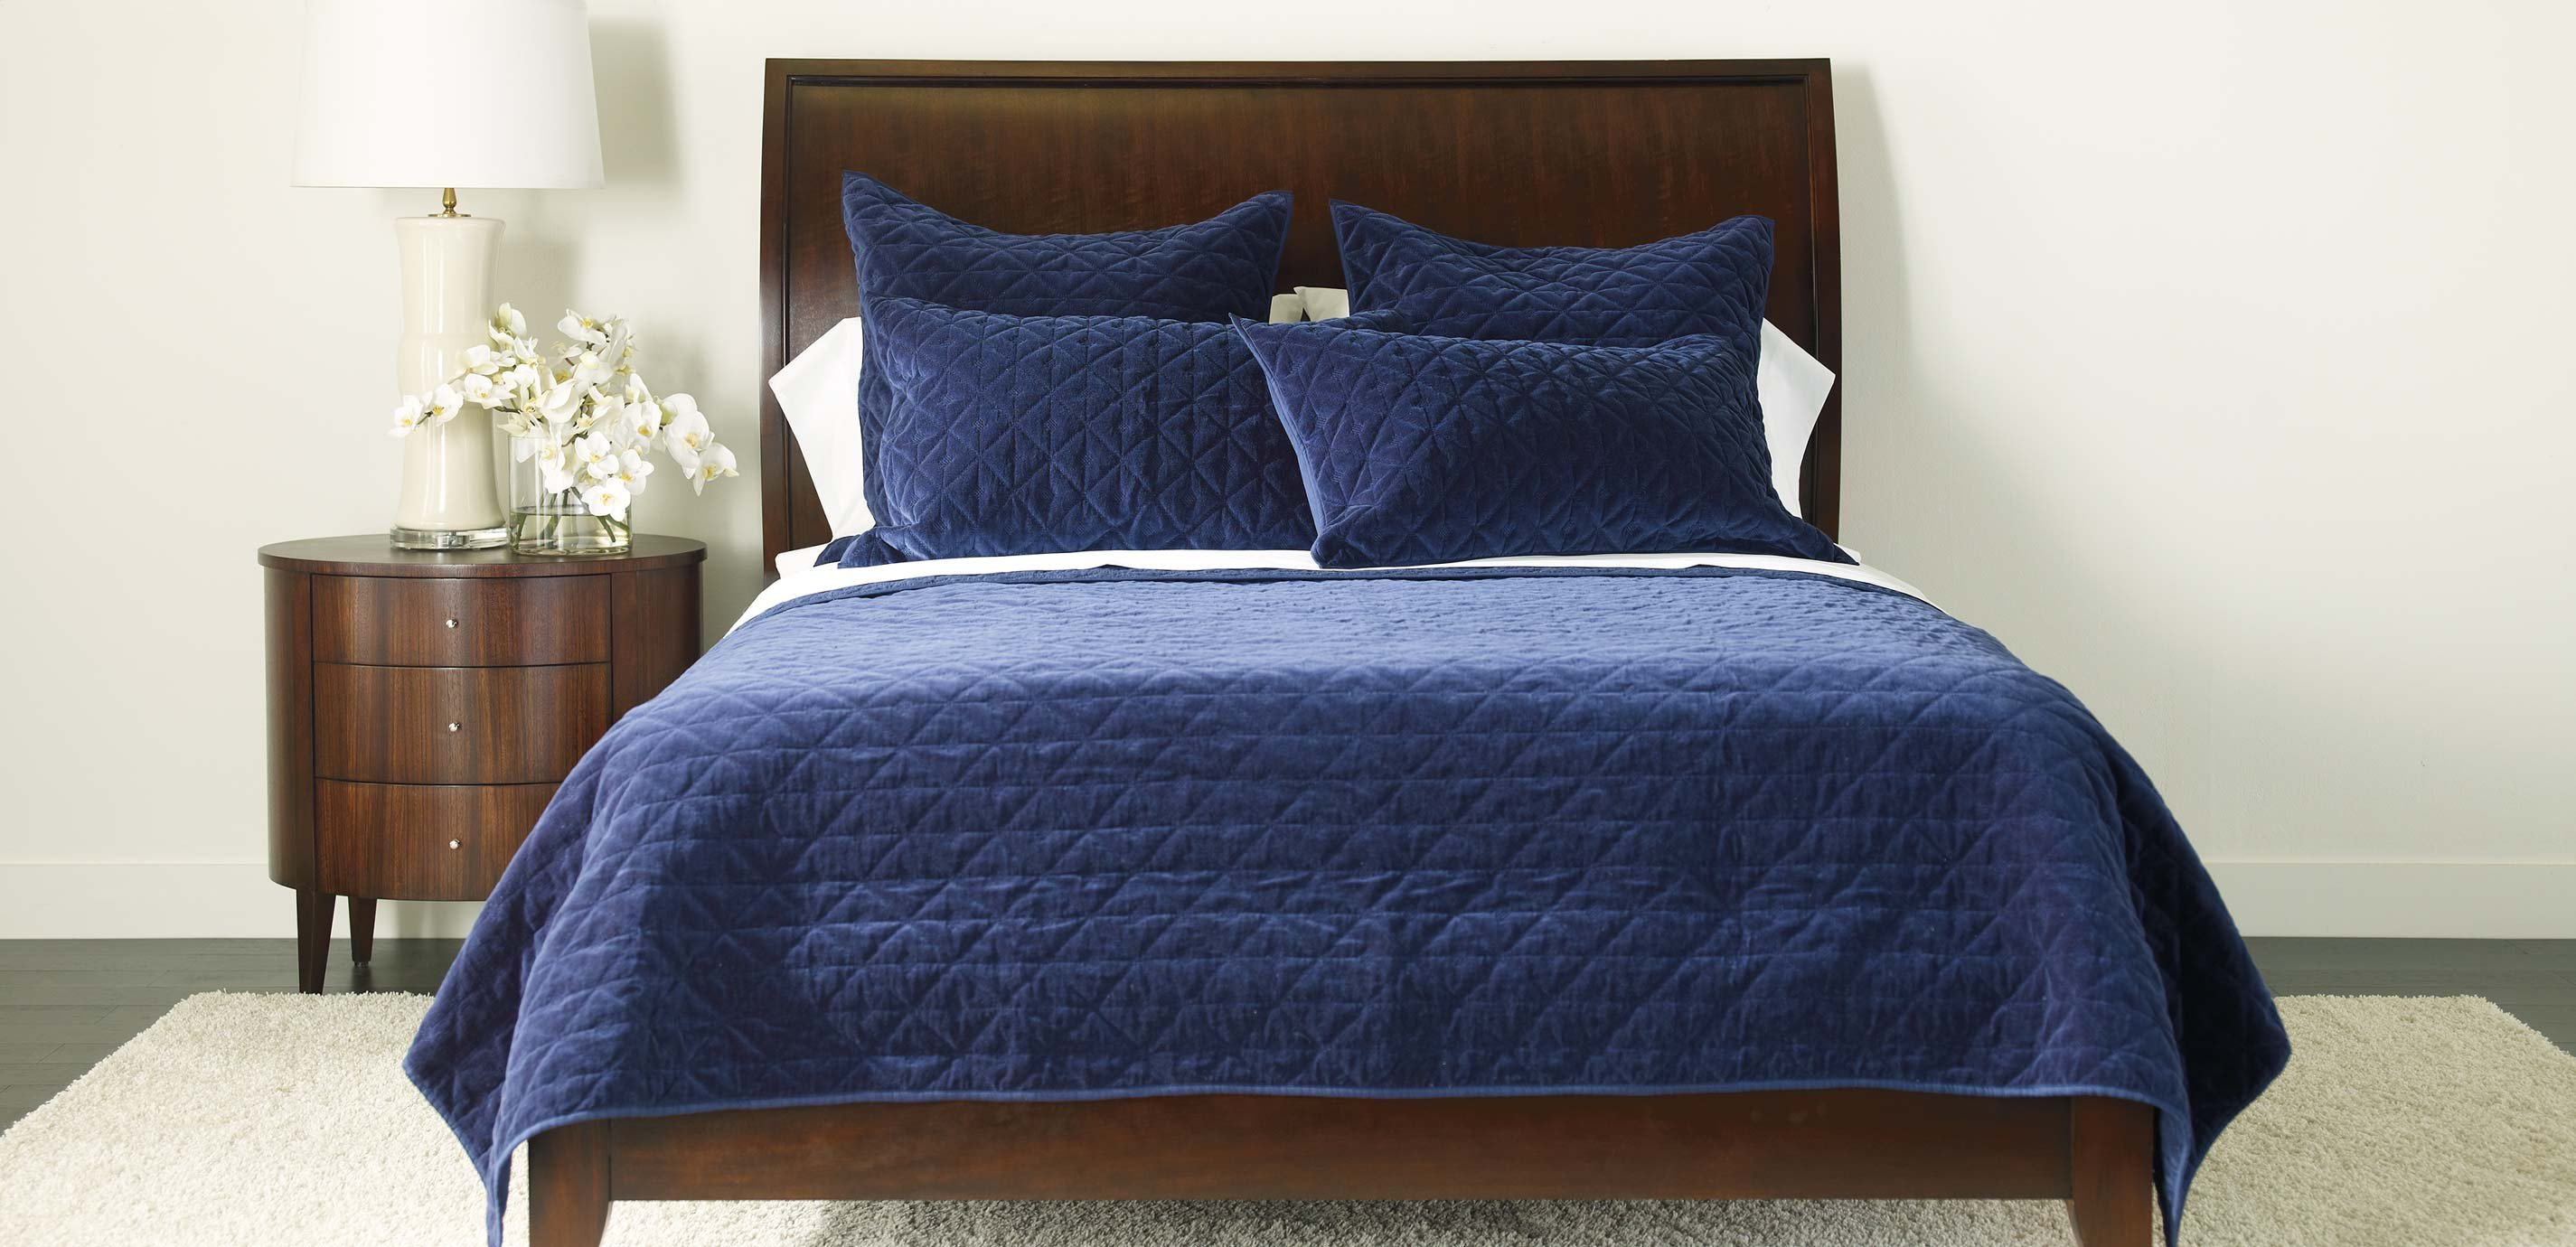 Gray Velvet Coverlet : Gresham navy velvet coverlet and shams quilts comforters